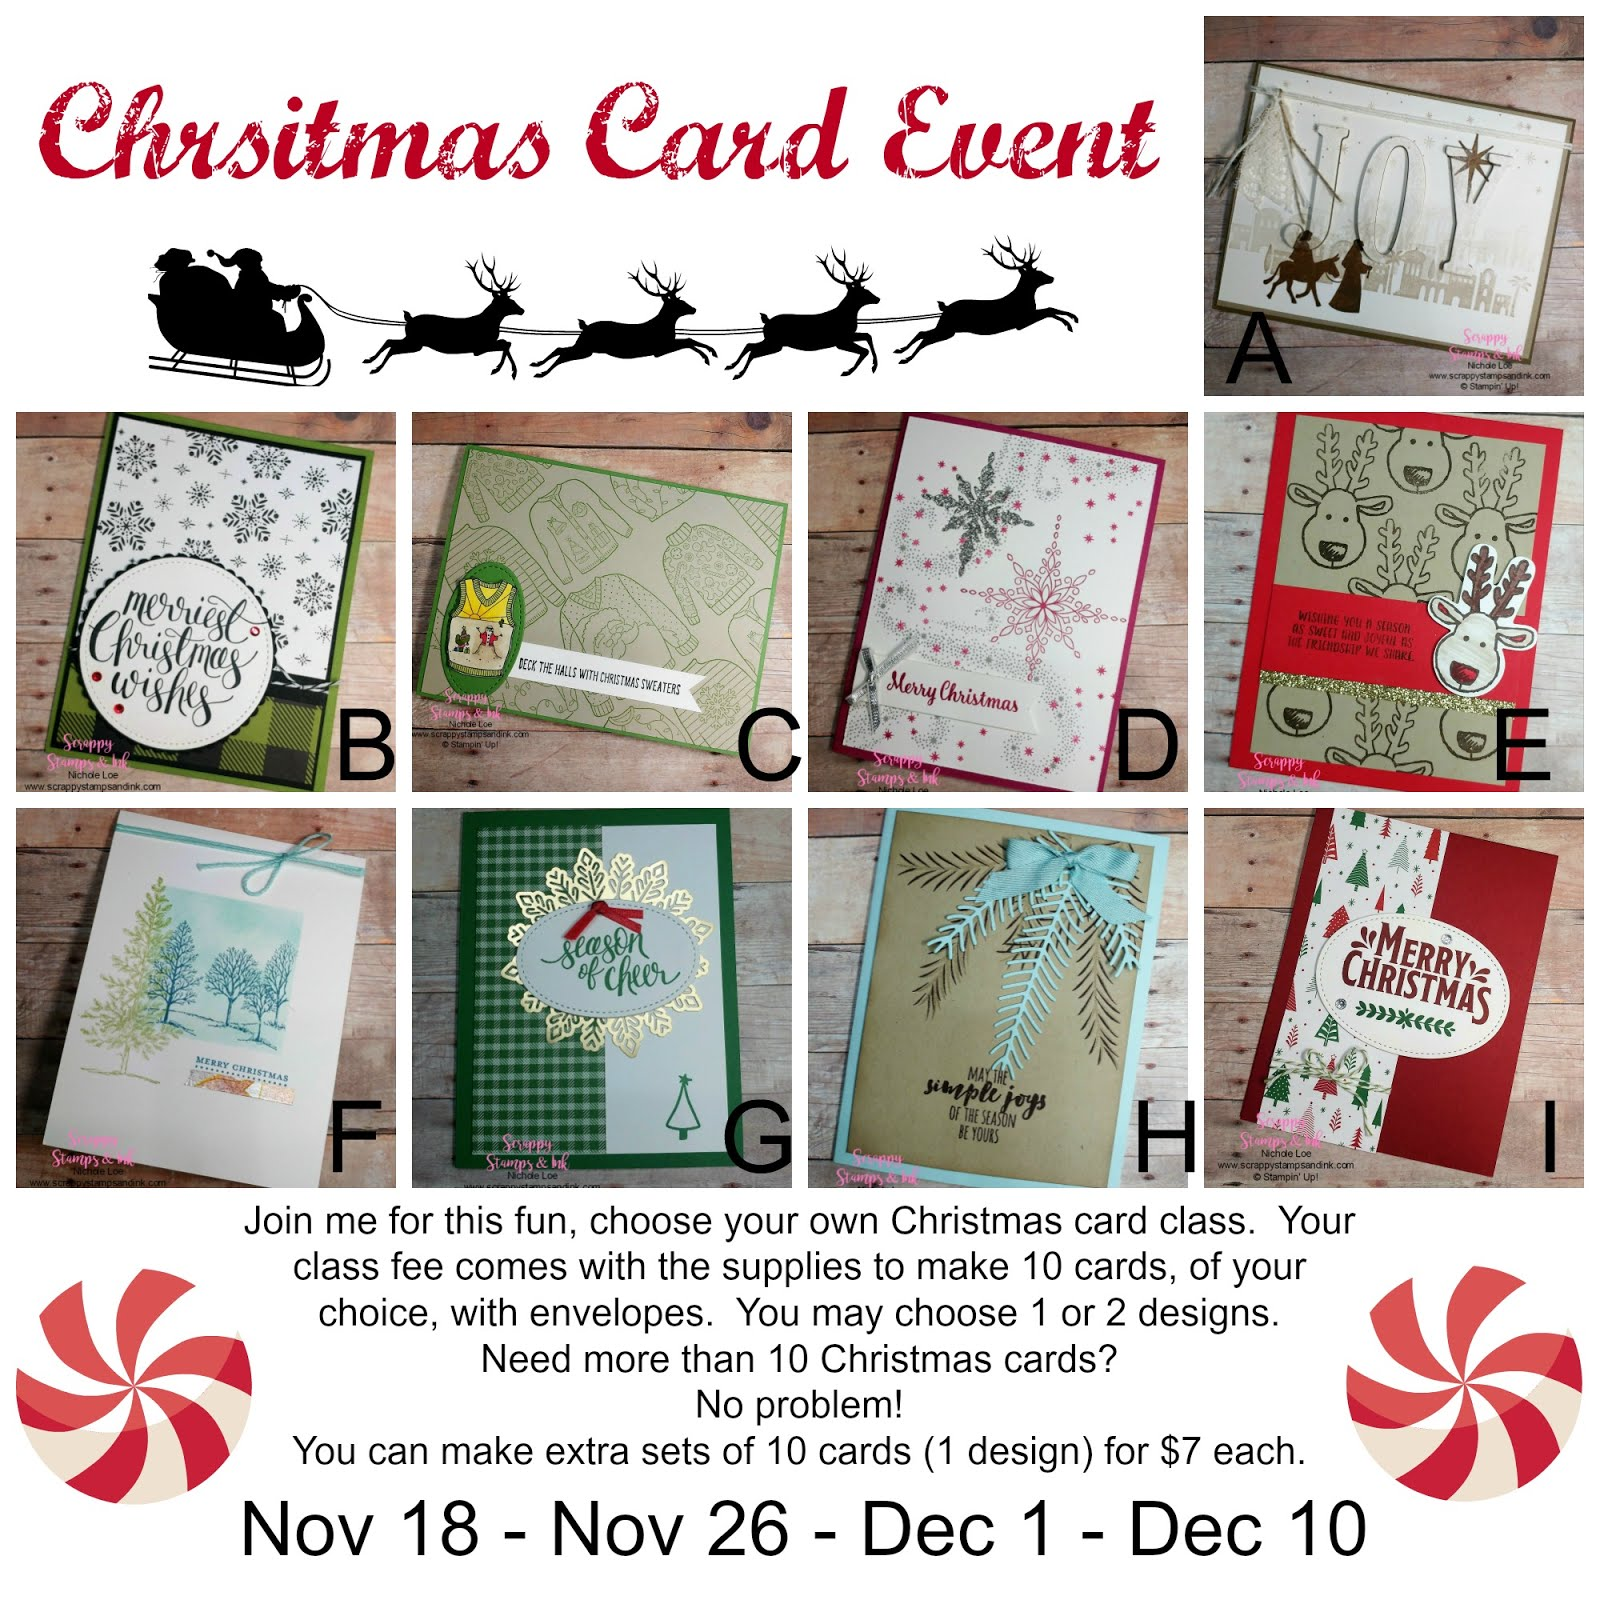 Christmas Card Event